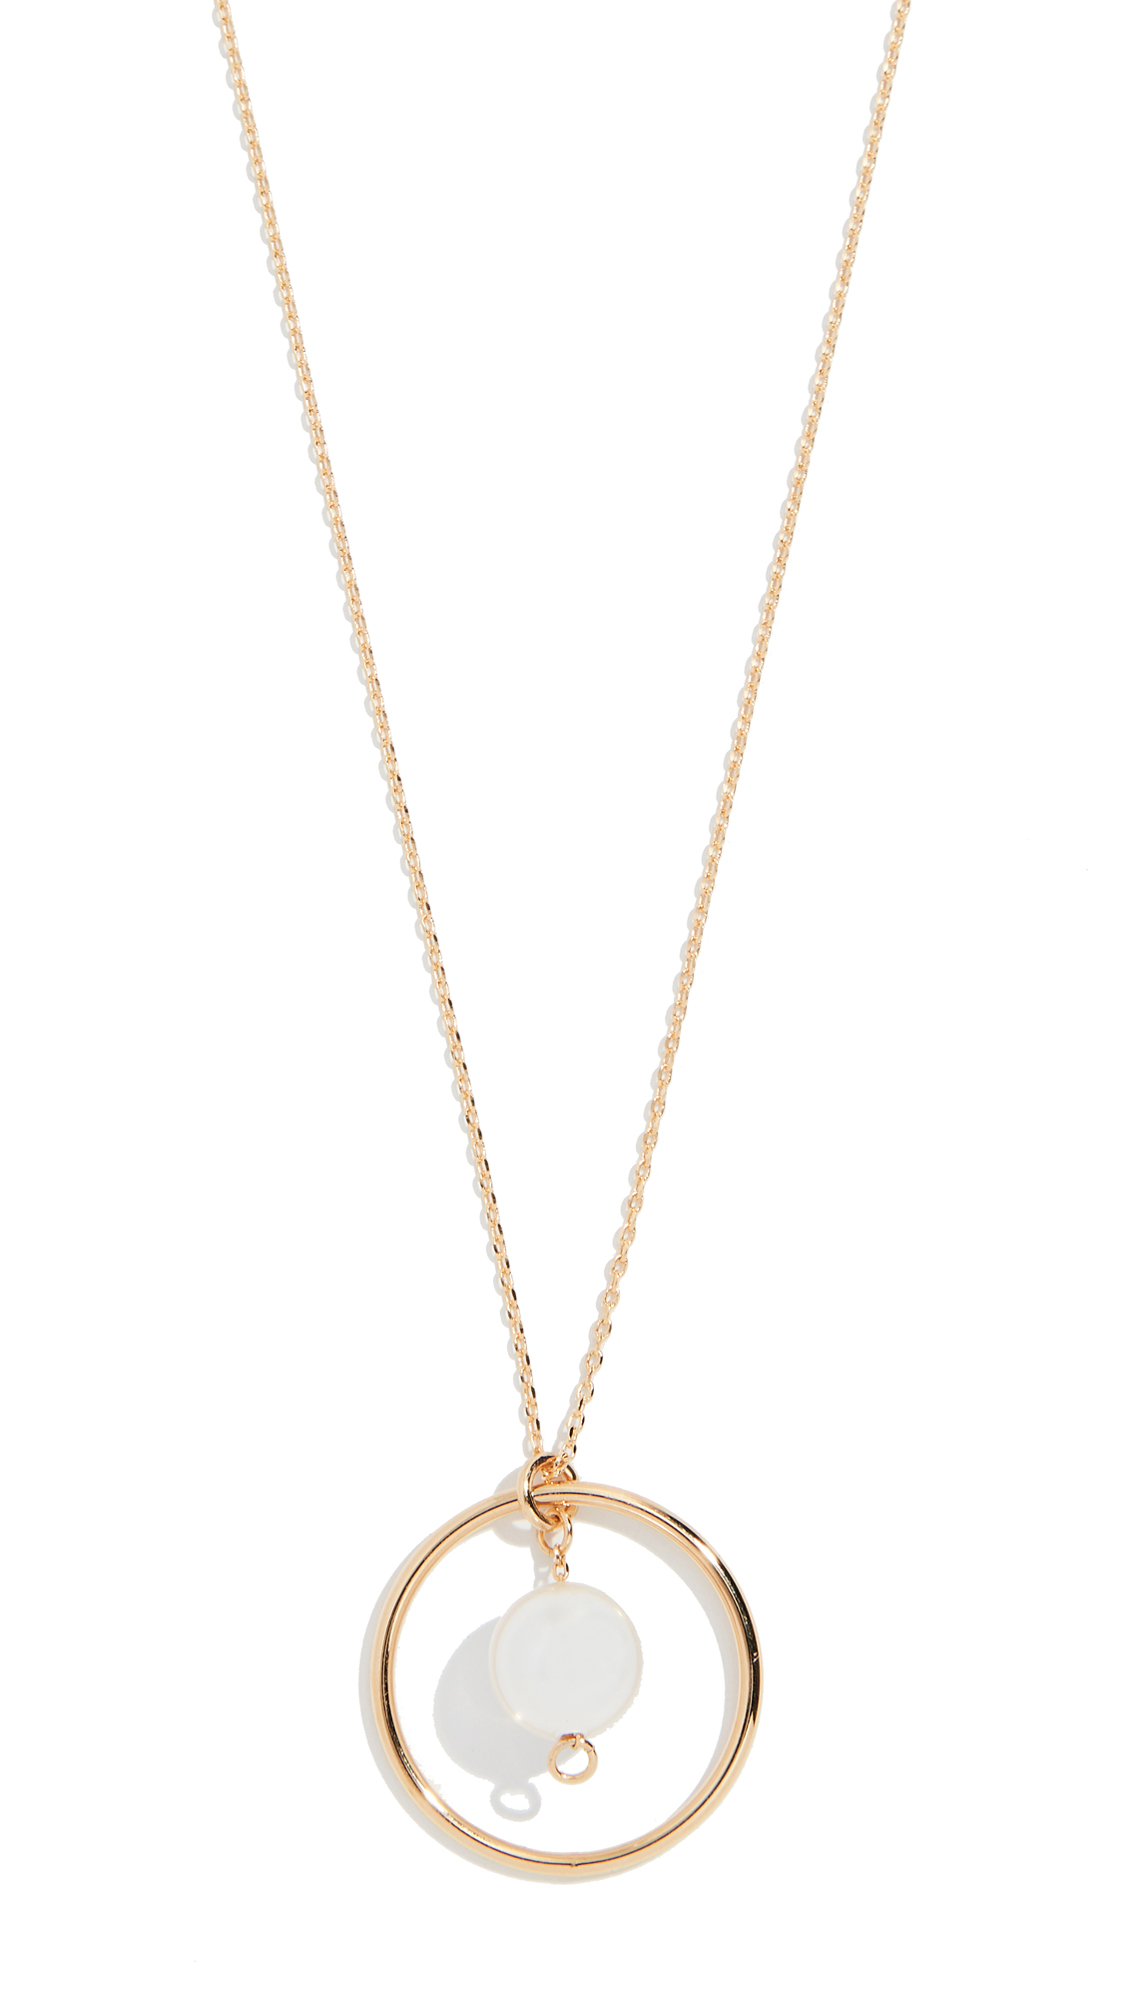 CLOVERPOST Mill Necklace in Yellow Gold